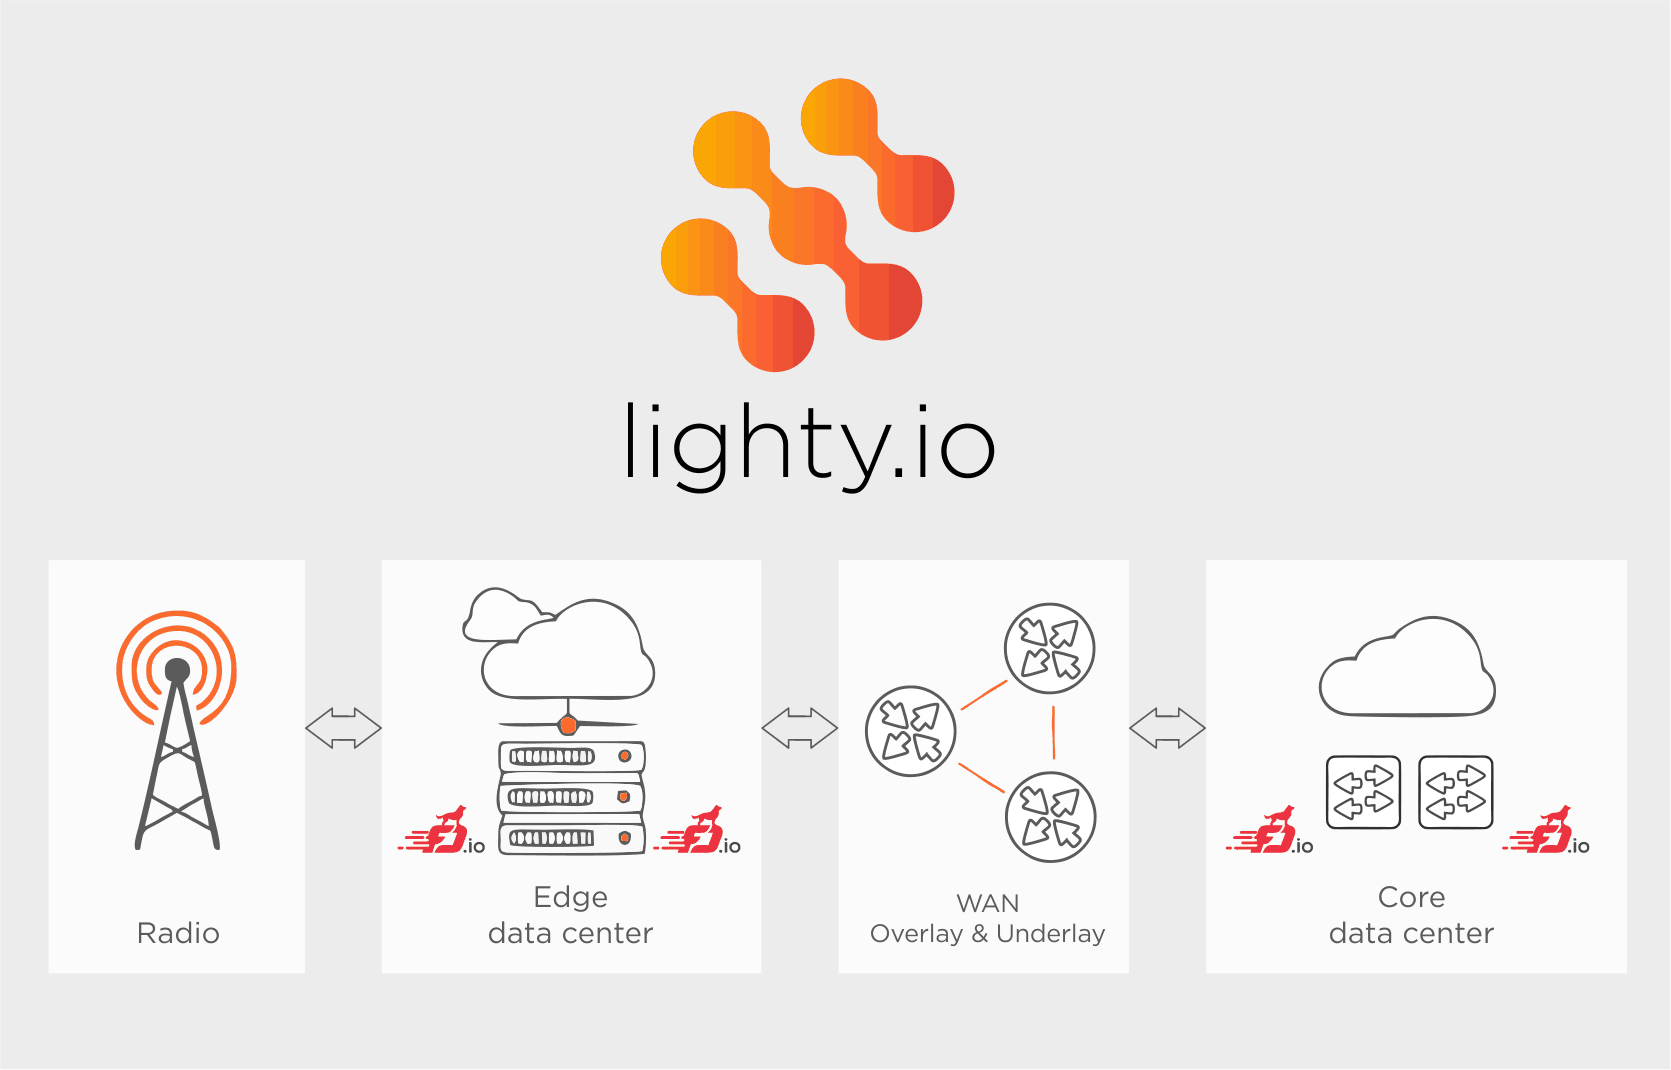 lighty.io scheme and use-case description